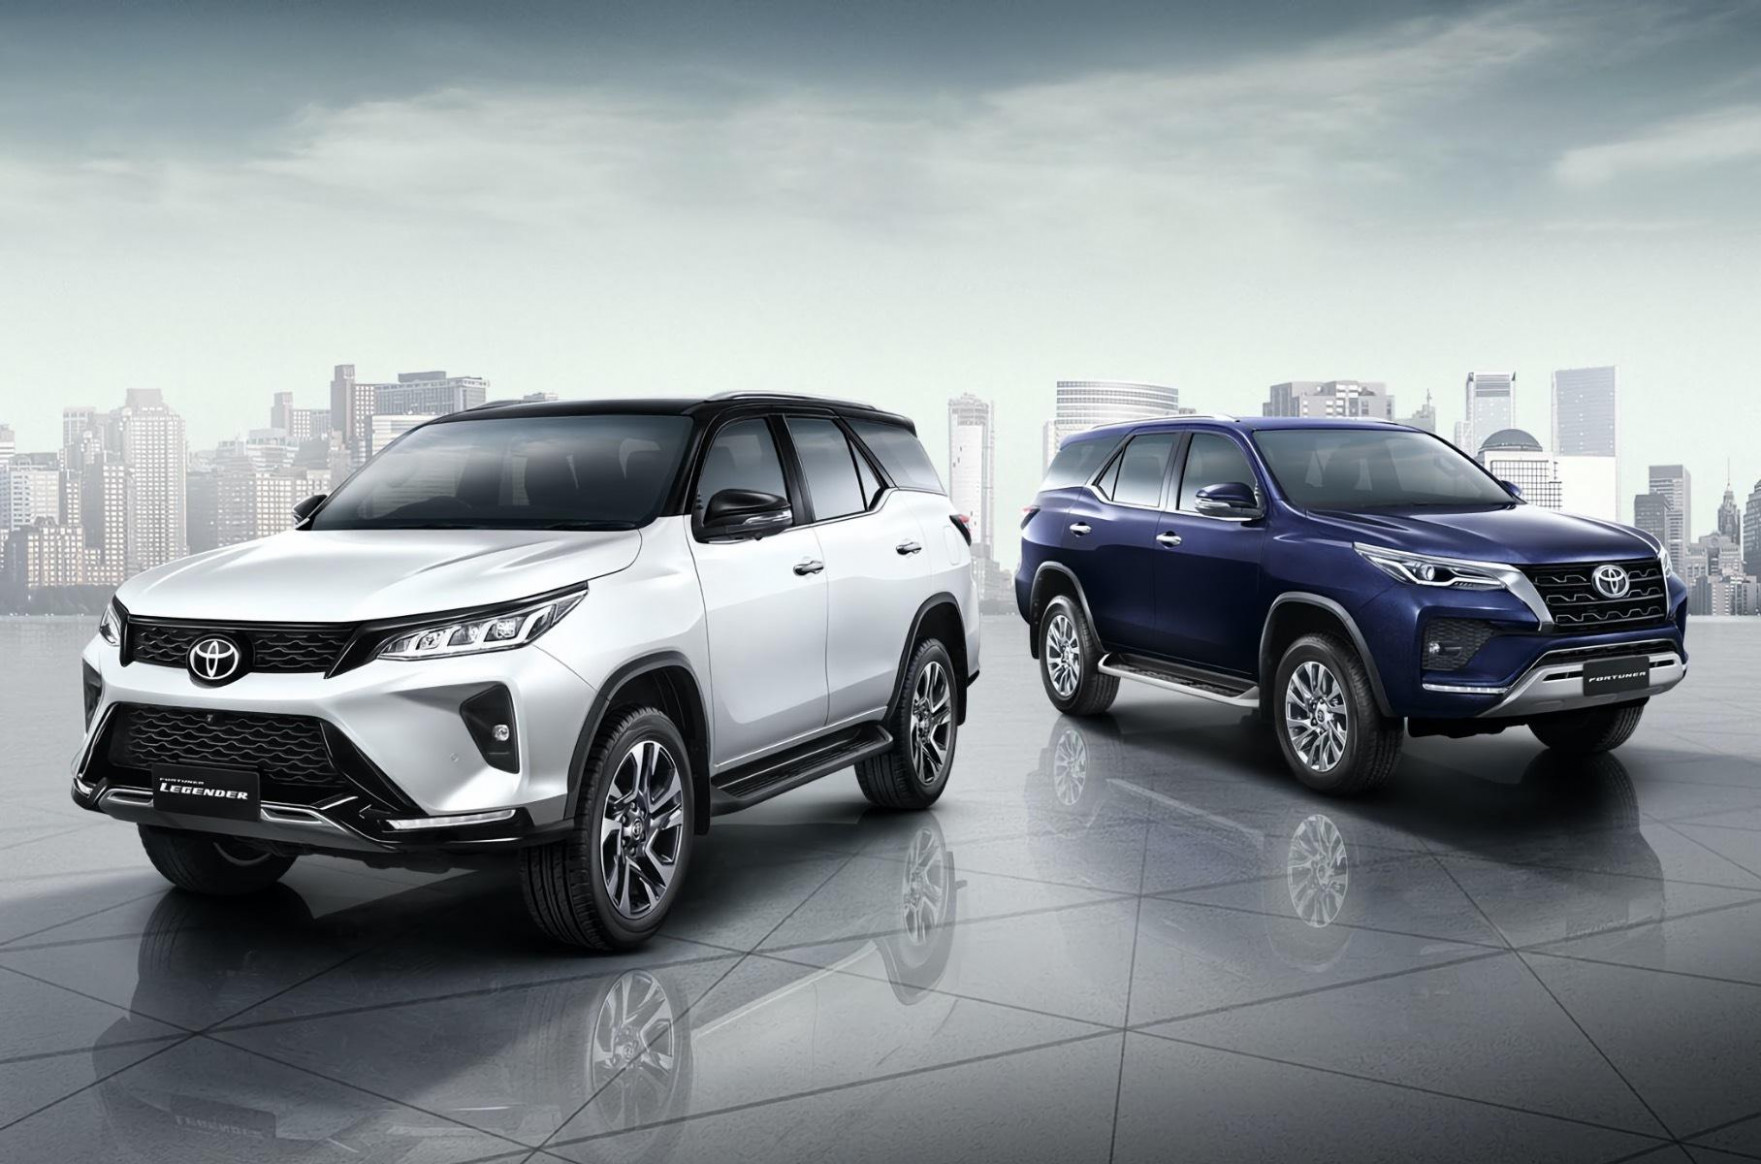 Pricing 2022 Toyota Fortuner